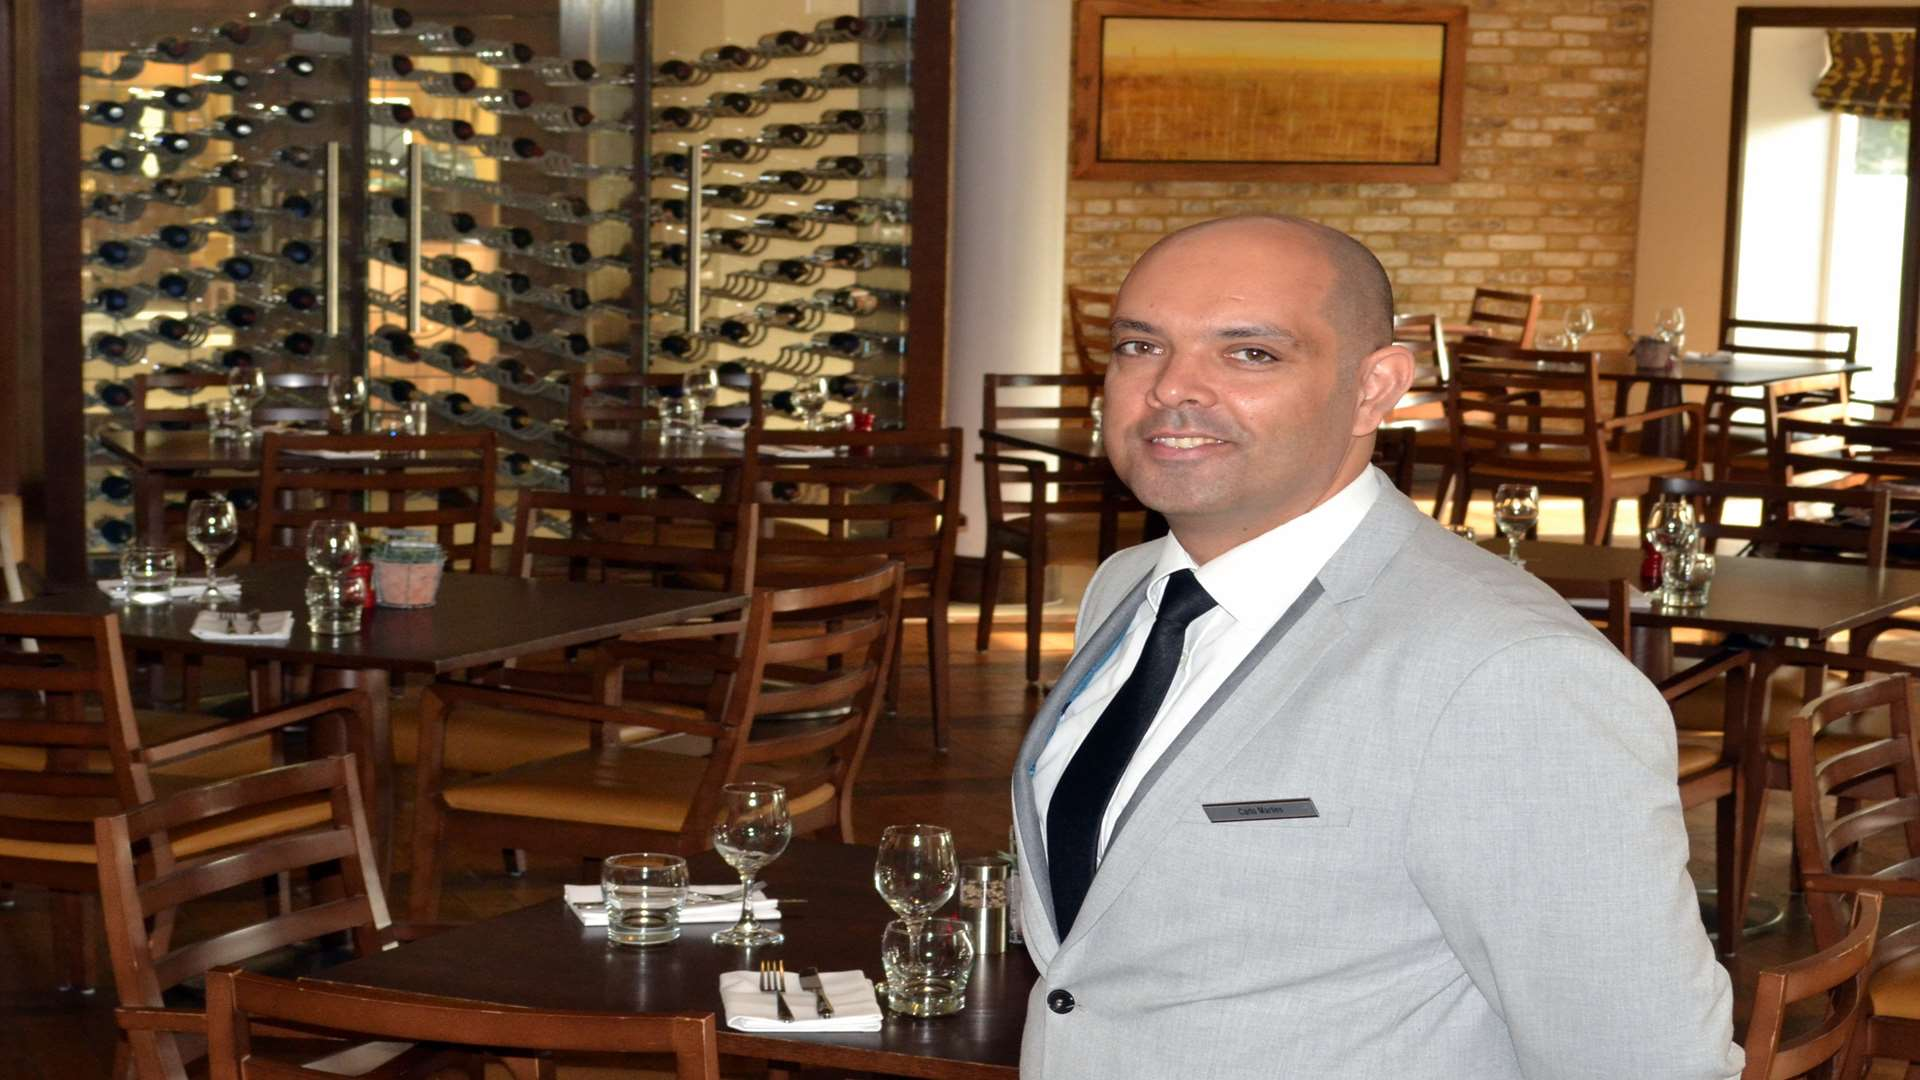 Carlo Martins, new bar manager at the Tudor Park Marriott Hotel in Maidstone